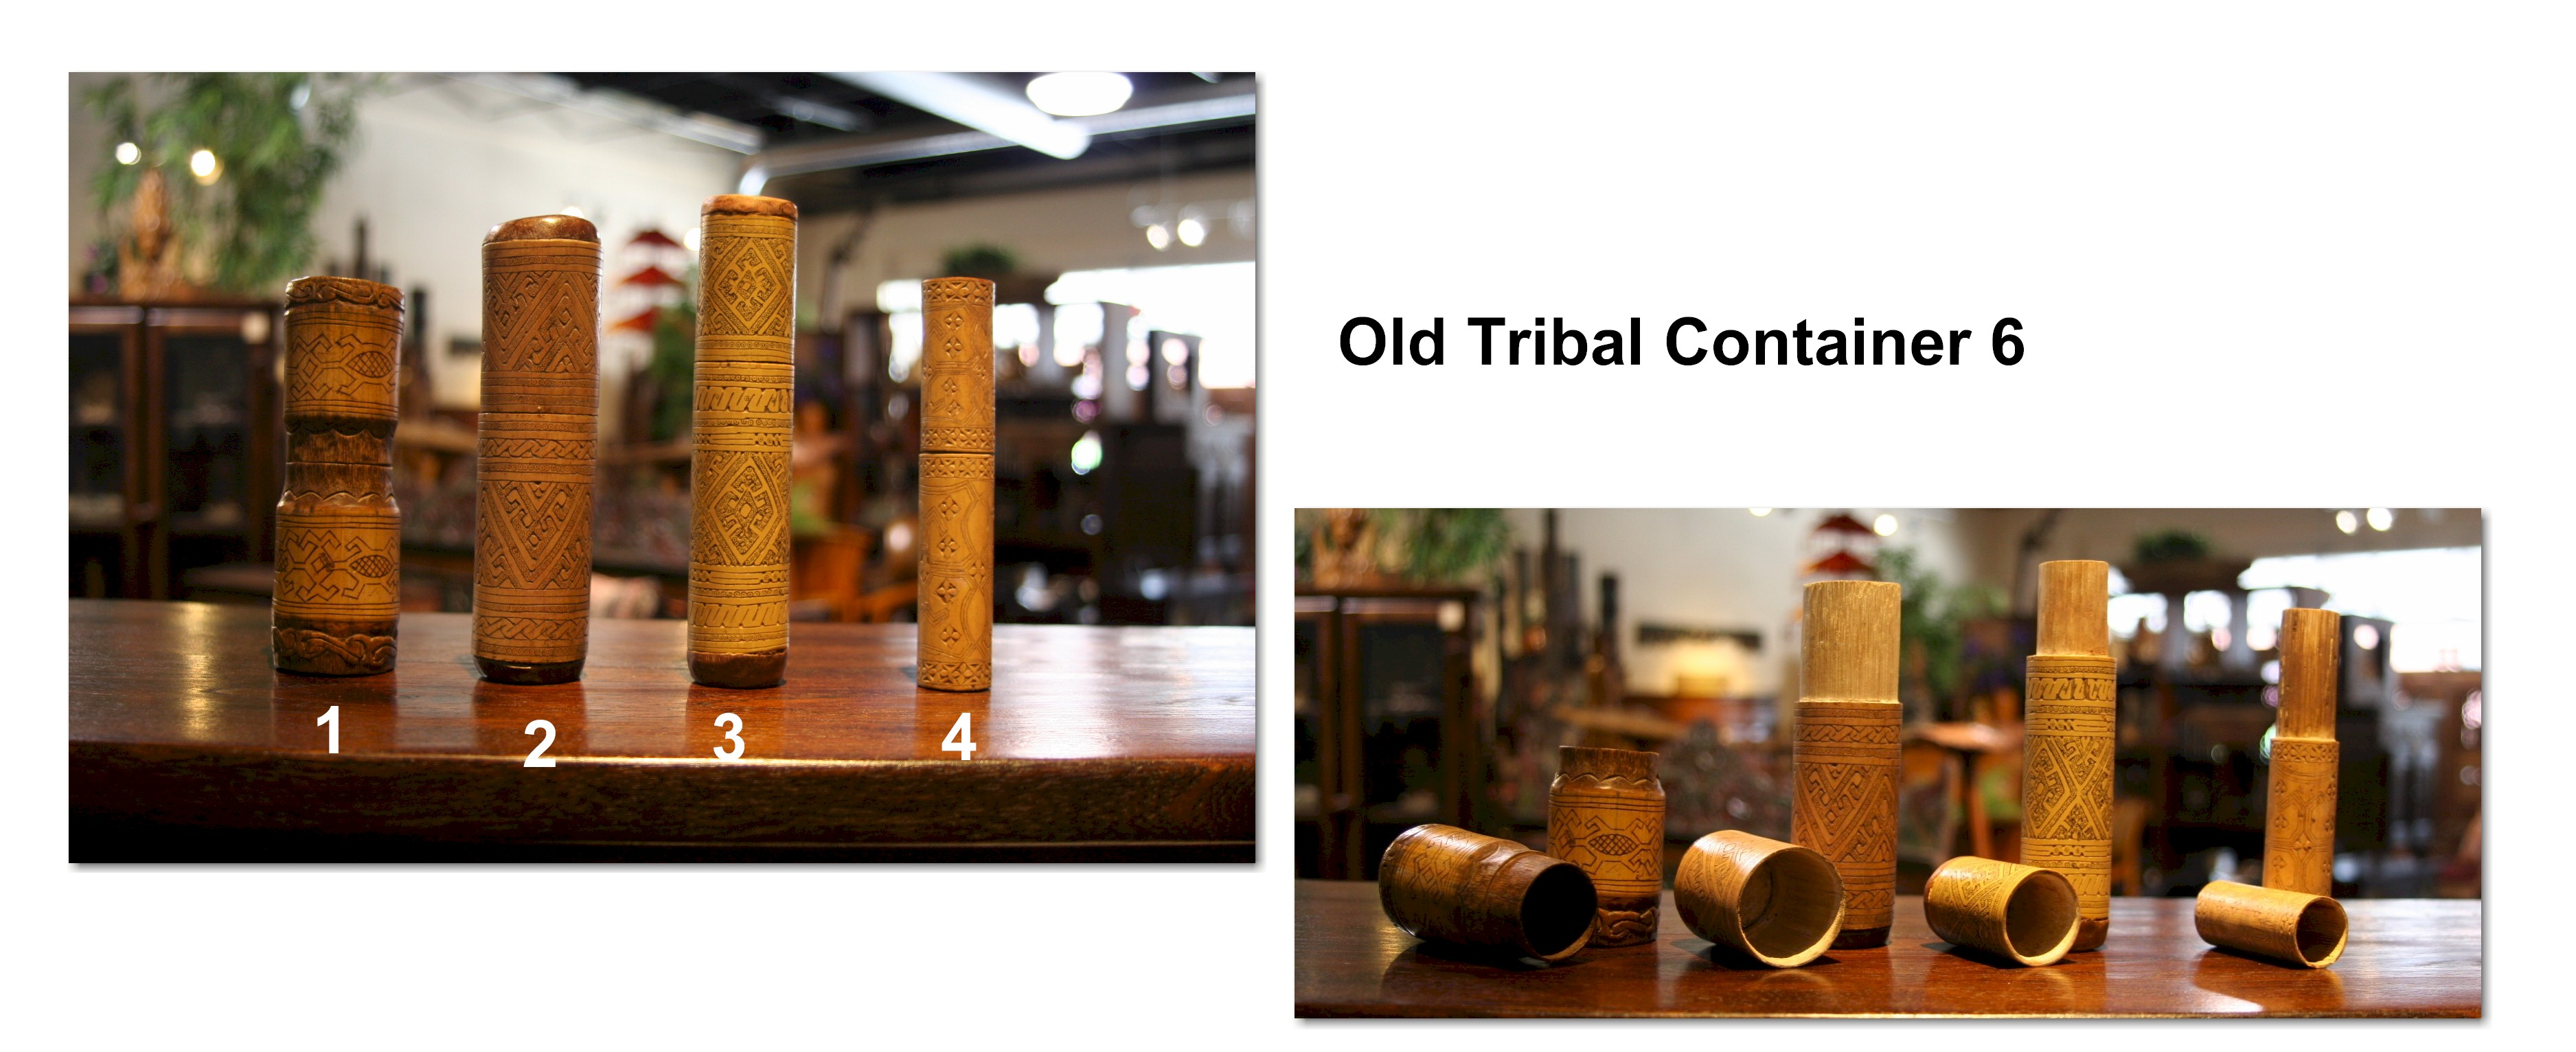 Old Tribal Container 6